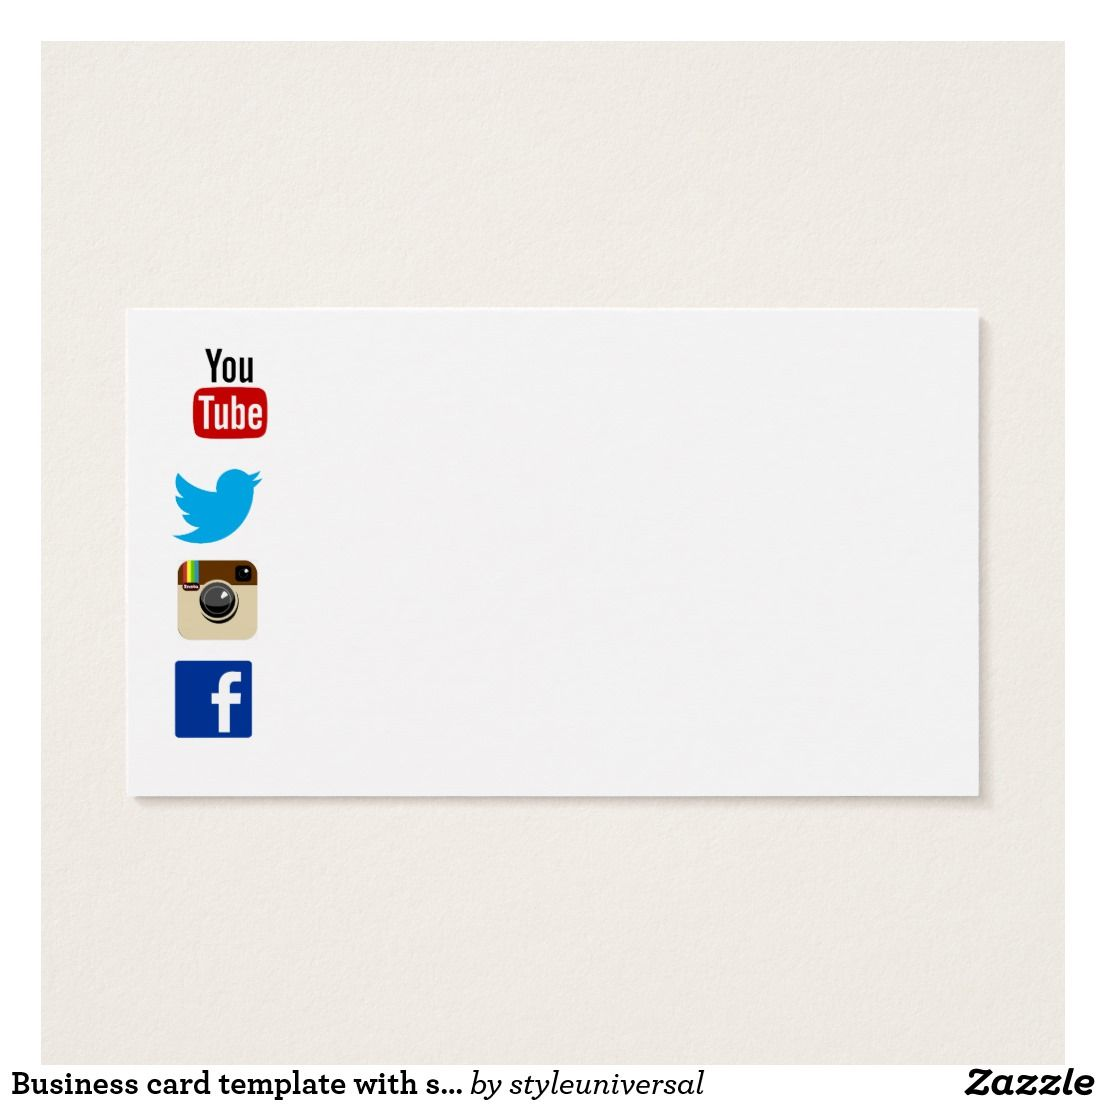 Business card template with social media icons 2 | Social media ...